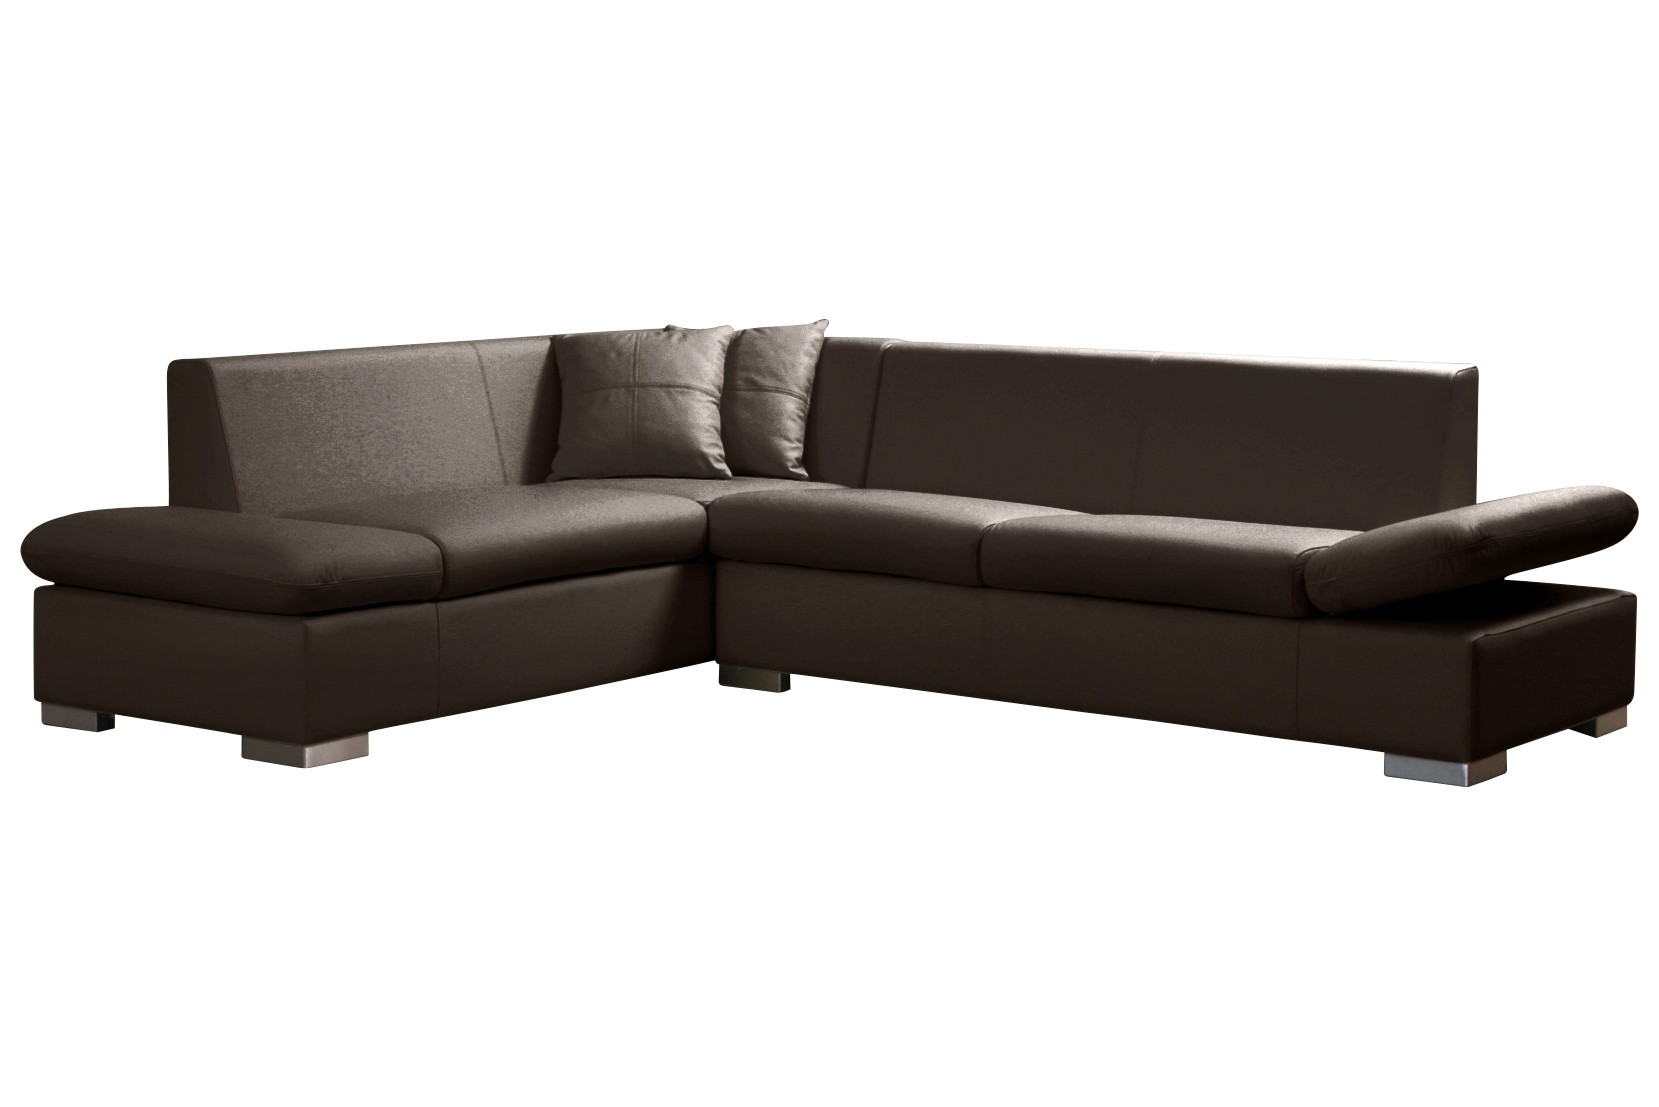 ecksofa leder braun bel divani designer ecksofa leder. Black Bedroom Furniture Sets. Home Design Ideas